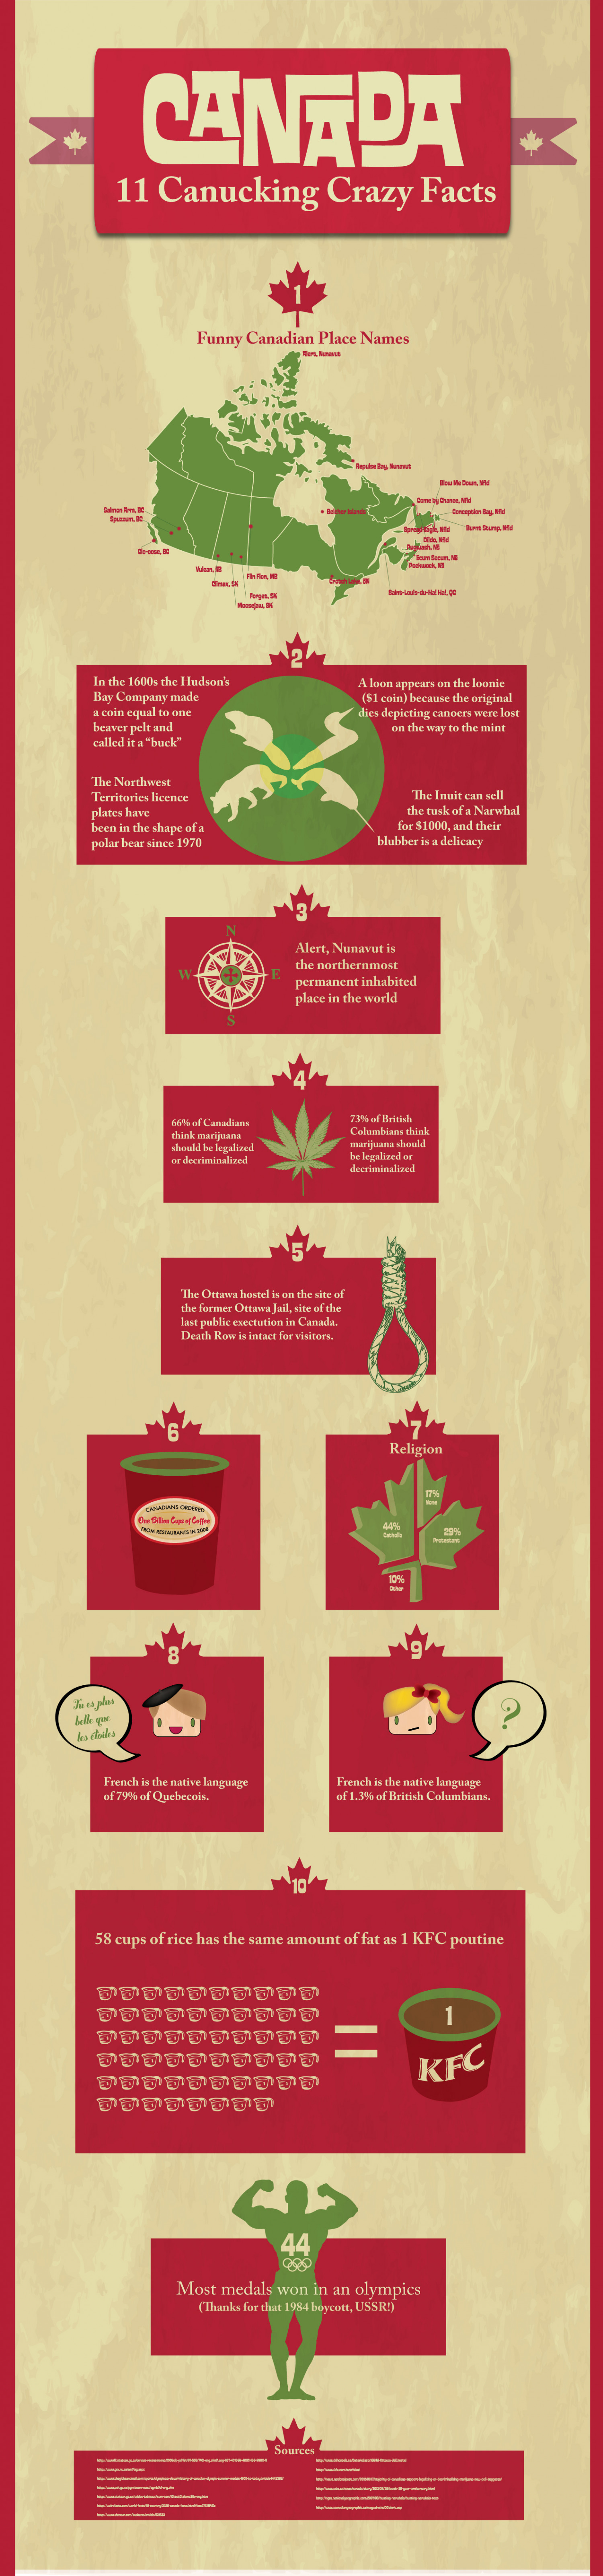 Canada 11 Canucking Crazy Facts Infographic